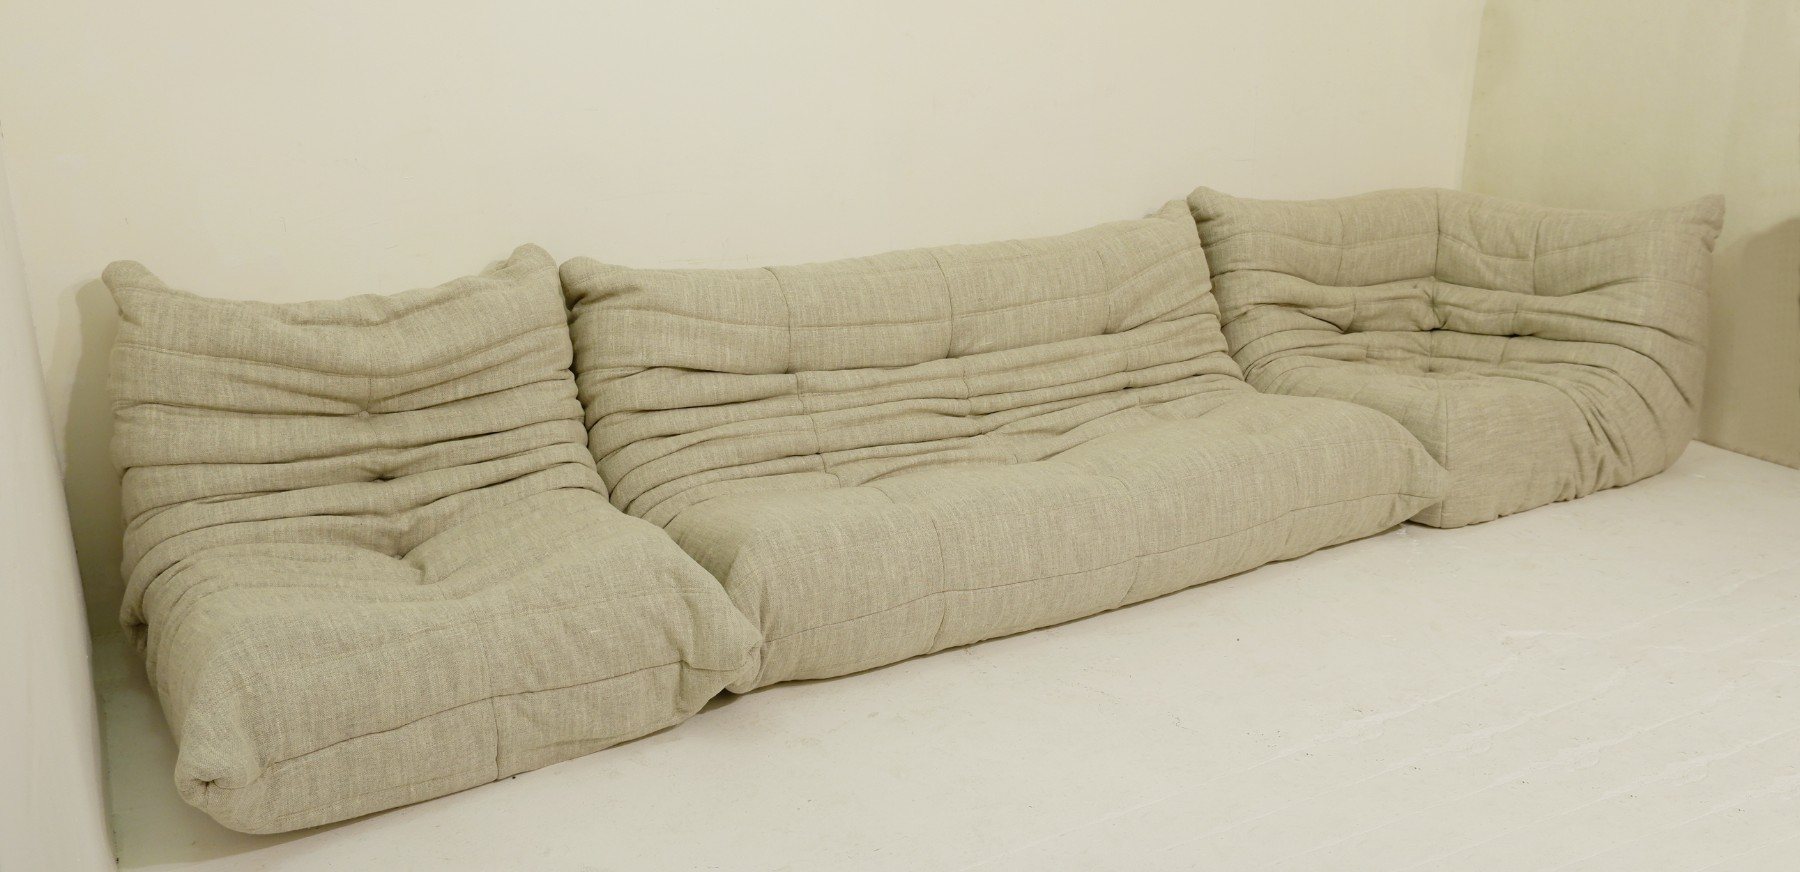 Sofa Set Action Togo Sofa Set By Michel Ducaroy For Ligne Roset New Upholstery